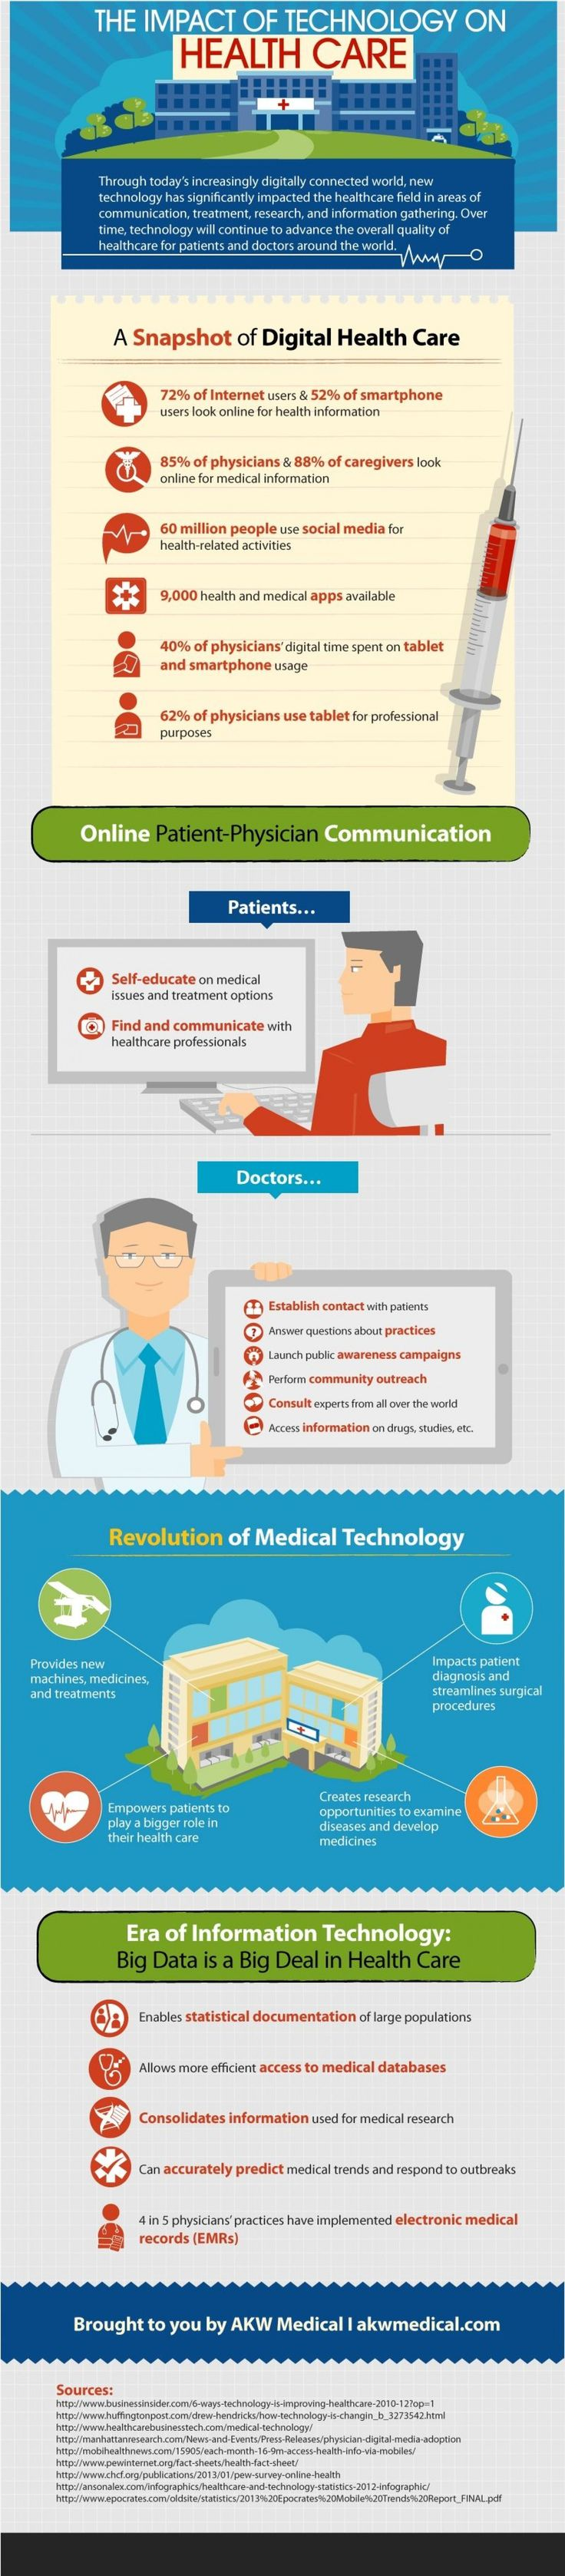 Through today's increasingly digitally connected world, new technology has significantly impacted the healthcare field